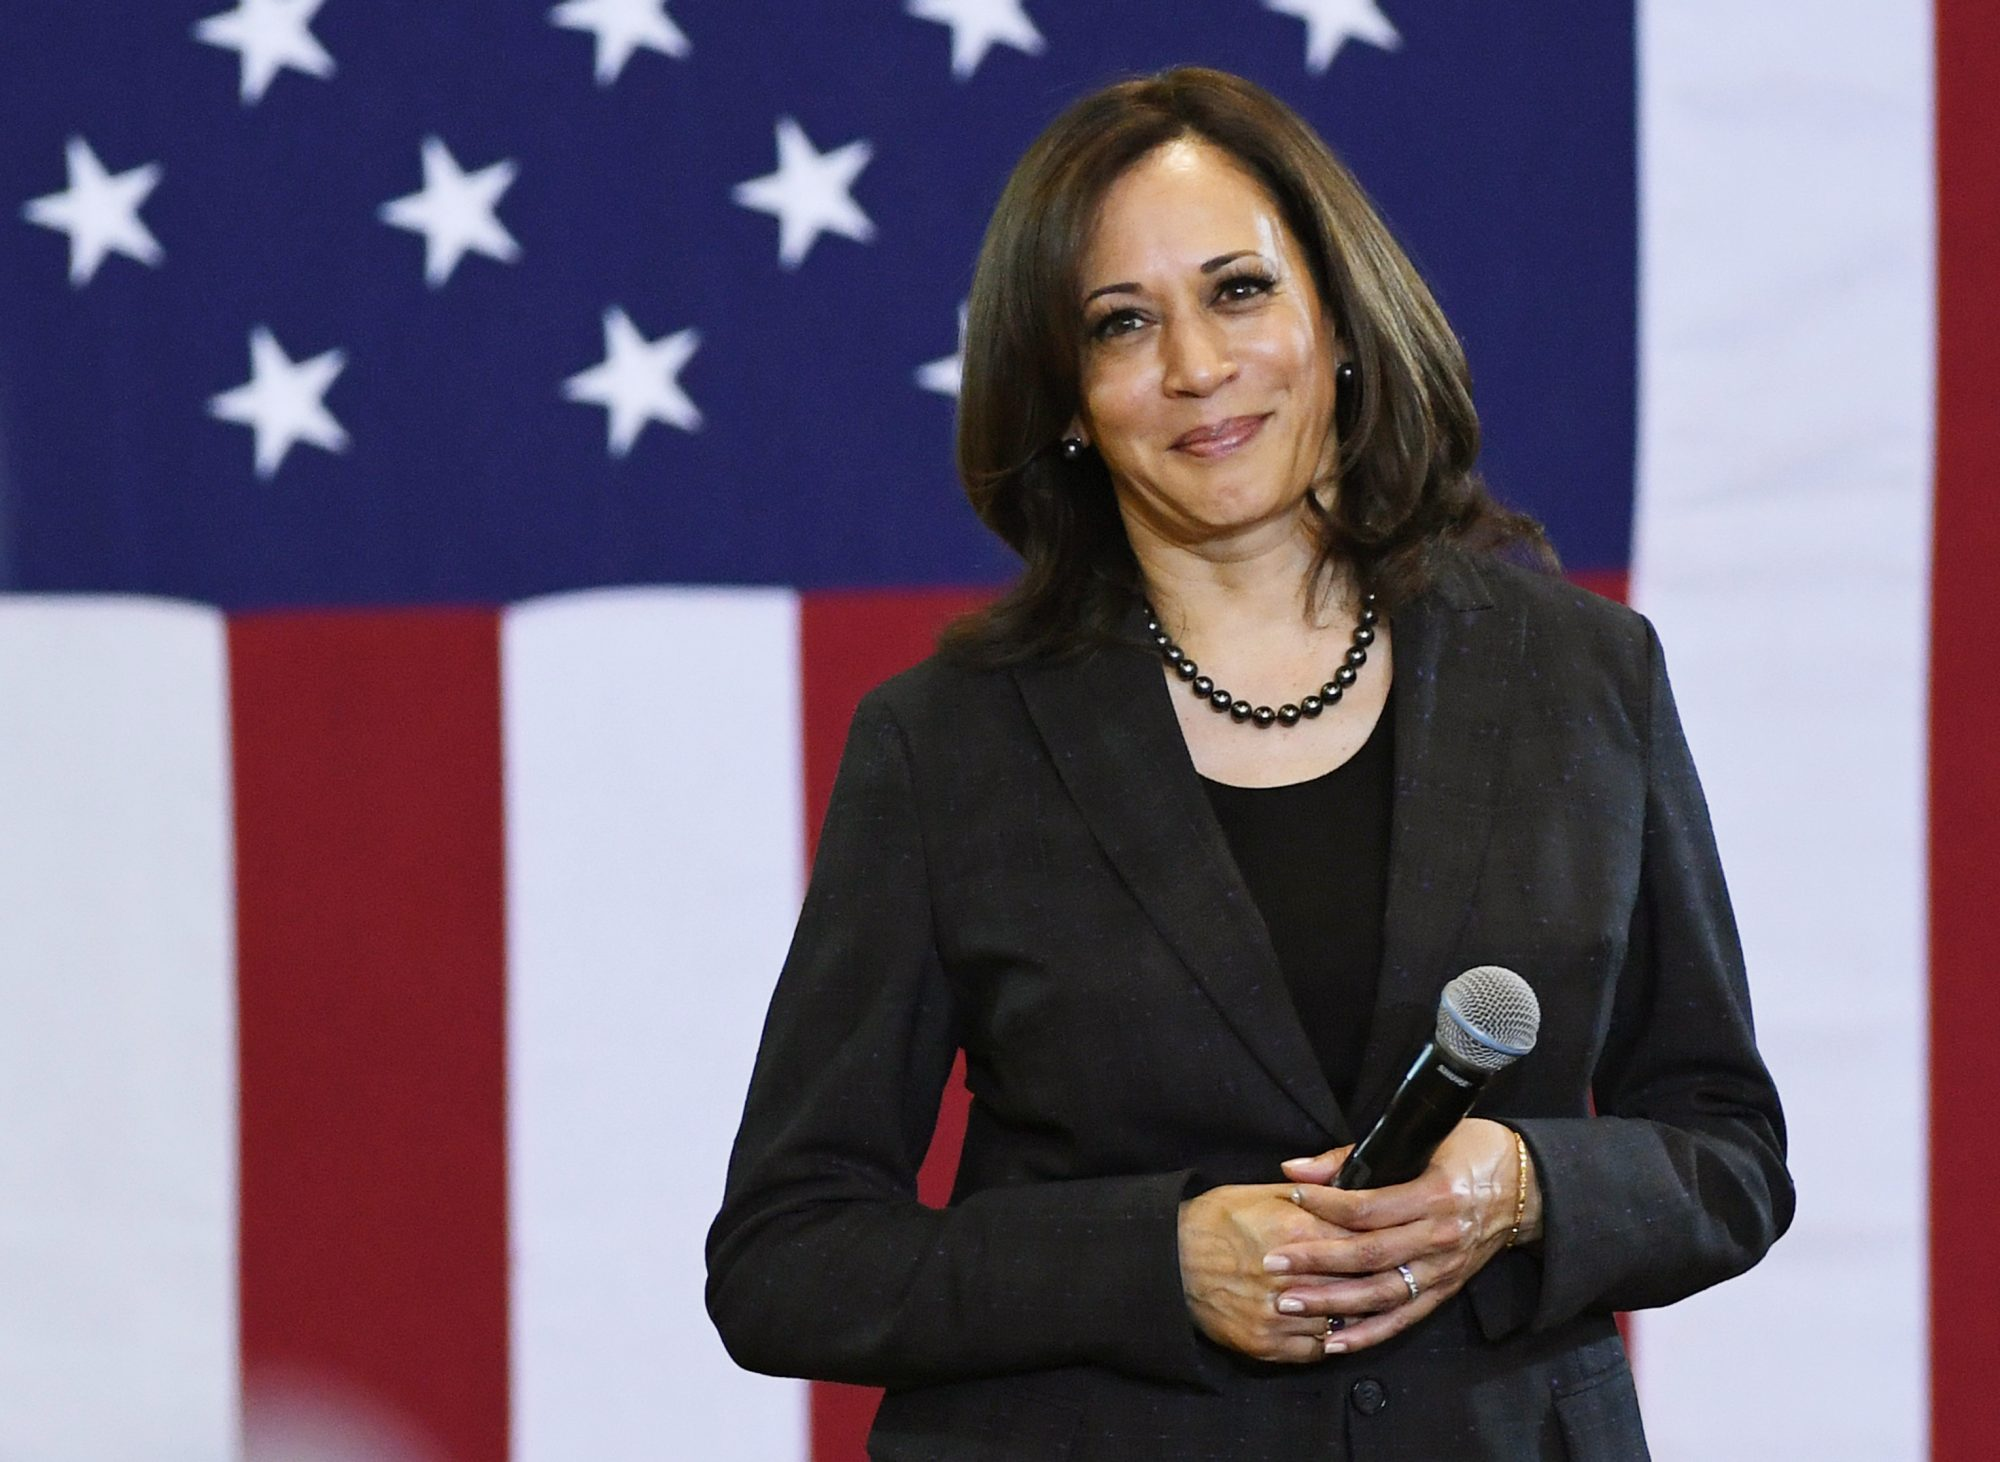 kamala harris code name